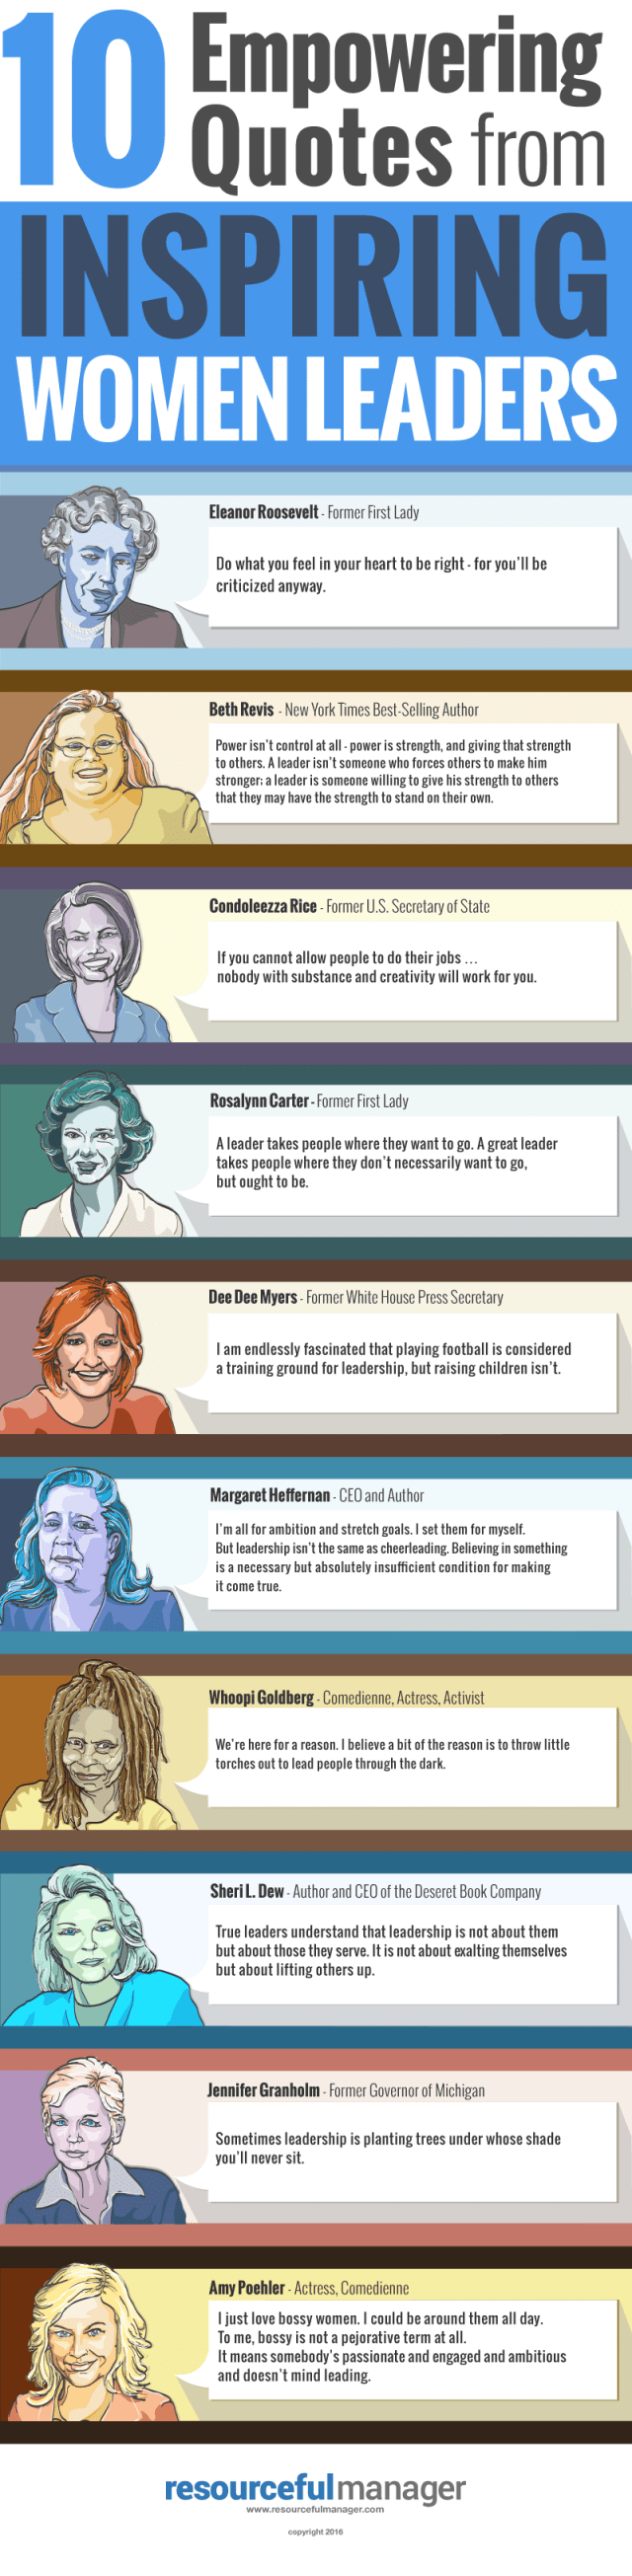 10 Empowering Quotes from Women Leaders